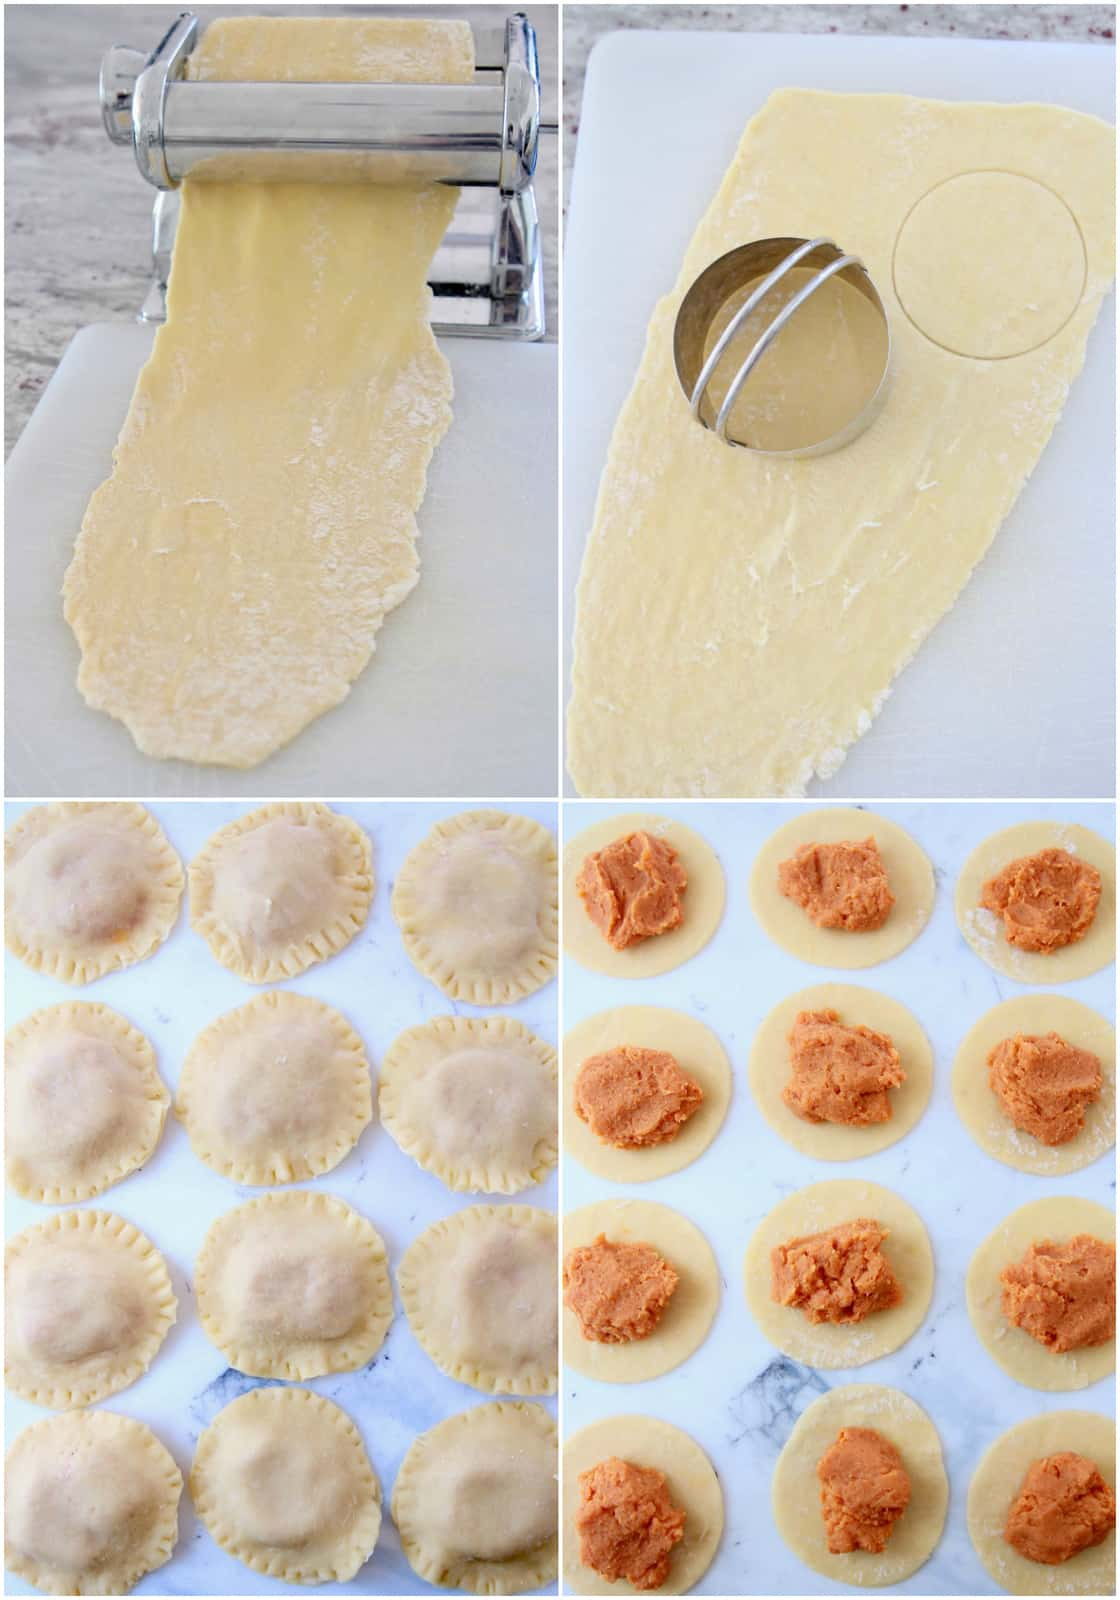 Collage of images showing how to make homemade sweet potato raviolis